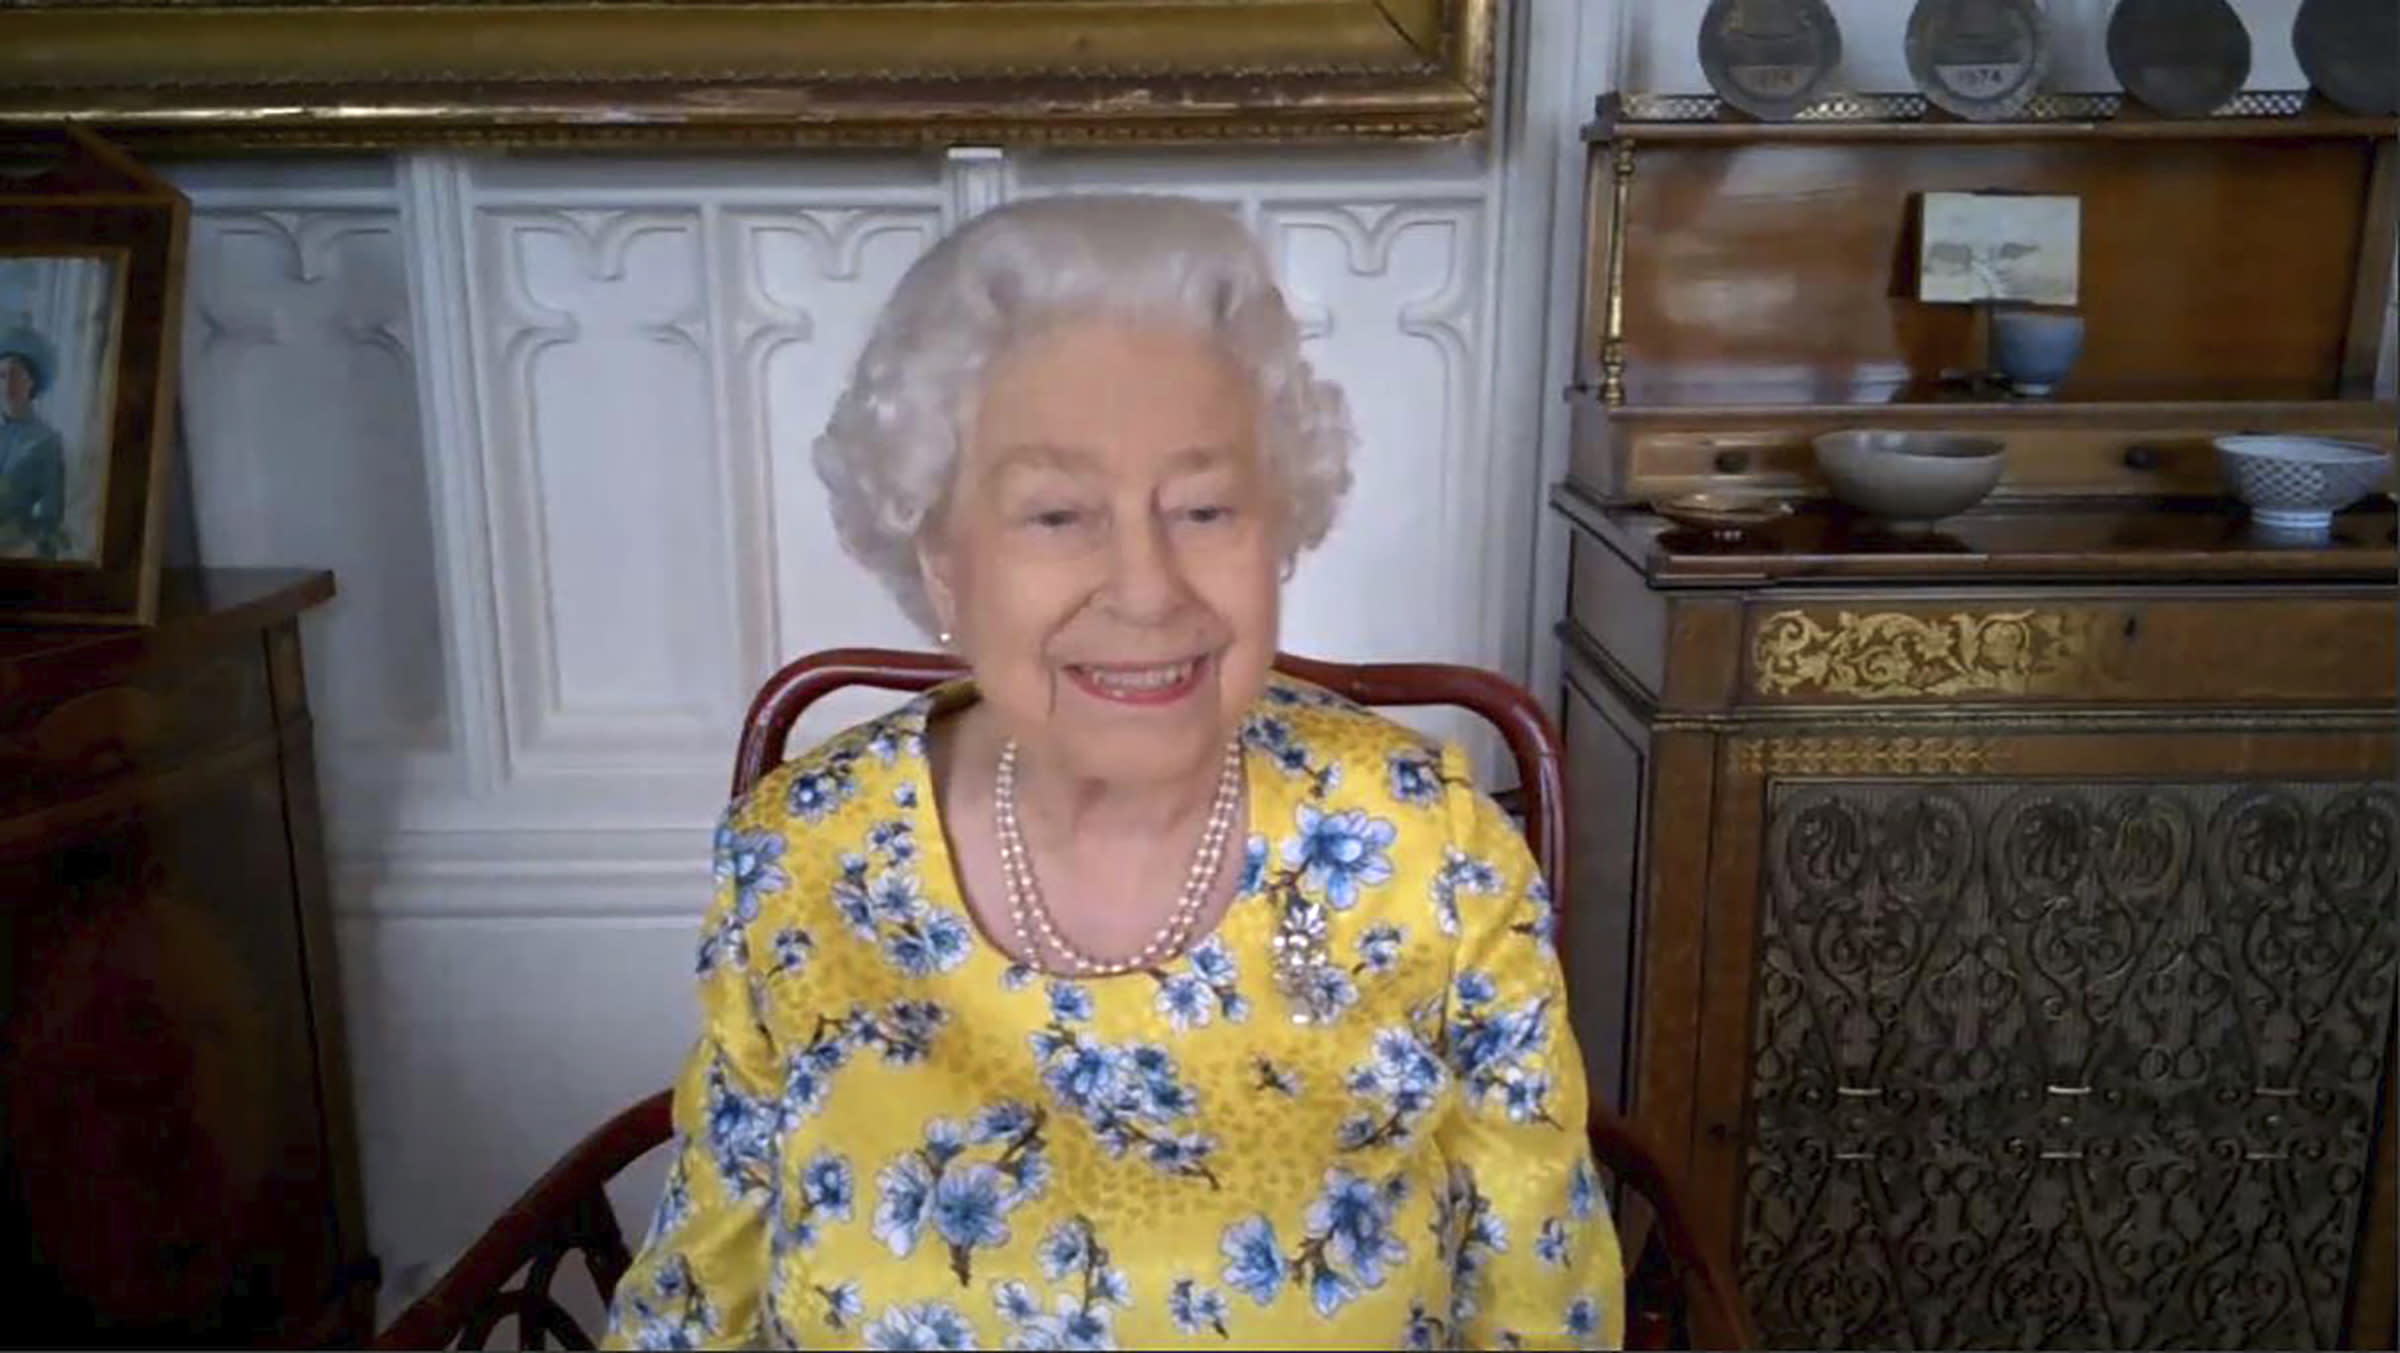 Undated handout photo released Saturday July 25, 2020, by the Royal Communications, showing Britain's Queen Elizabeth II in Windsor, England, during a video link call for a 'virtual' visit to the Foreign and Commonwealth Office, FCO, to speak to members of staff and watch the official unveiling of a new portrait of herself by artist Miriam Escofet. The painting was commissioned by the Foreign and Commonwealth Office (FCO), as a 'lasting tribute to her service' to diplomacy. The Queen paid a virtual visit to the FCO via video call, to hear about their response to the COVID-19 outbreak and join the unveiling of the new portrait. (Foreign and Commonwealth Office via AP)